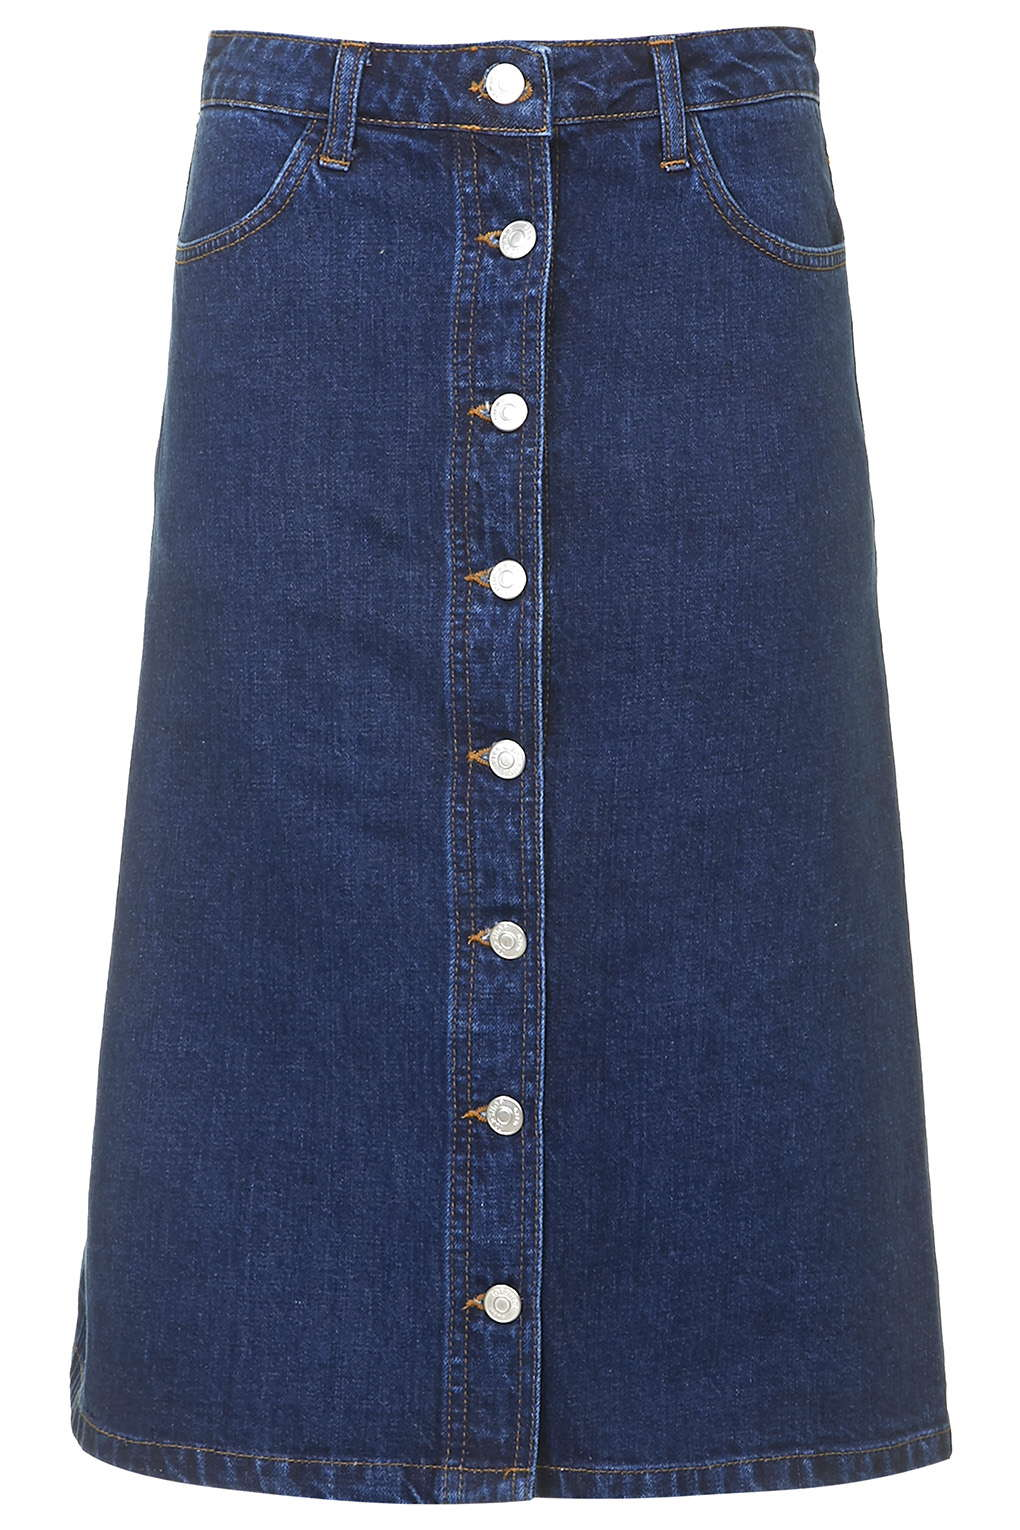 Denim Button Front Midi Skirt - Skirts - Clothing